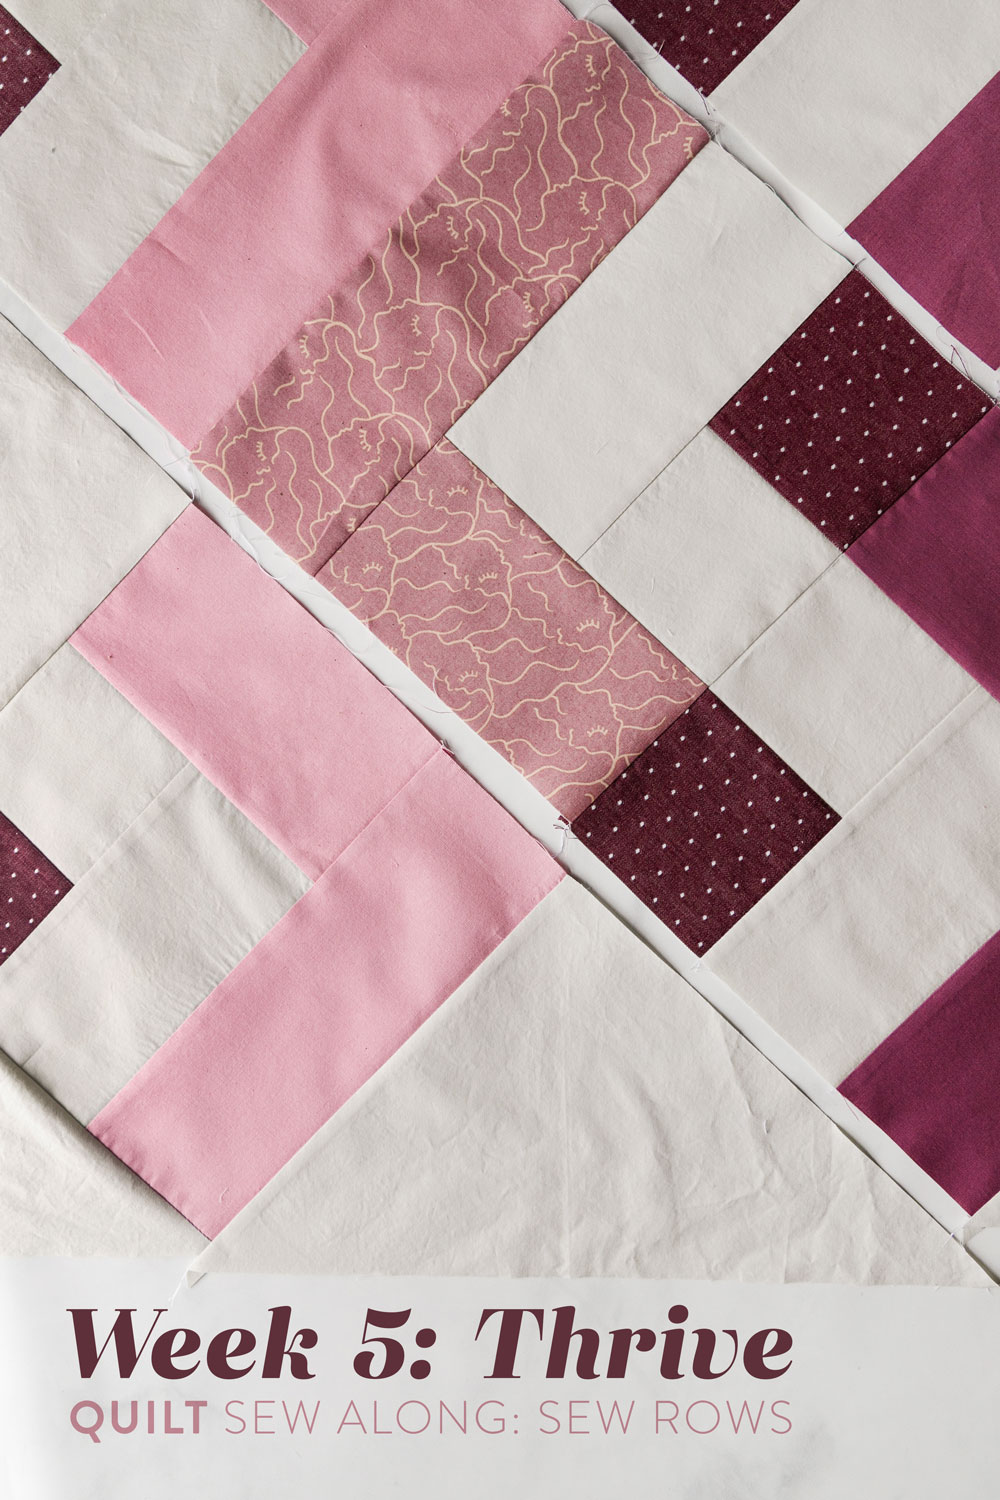 This week in the Thrive sew along we are sewing our blocks into rows. So there's no confusion, I have a video tutorial with directions and tips! suzyquilts.com #quilting #quilt